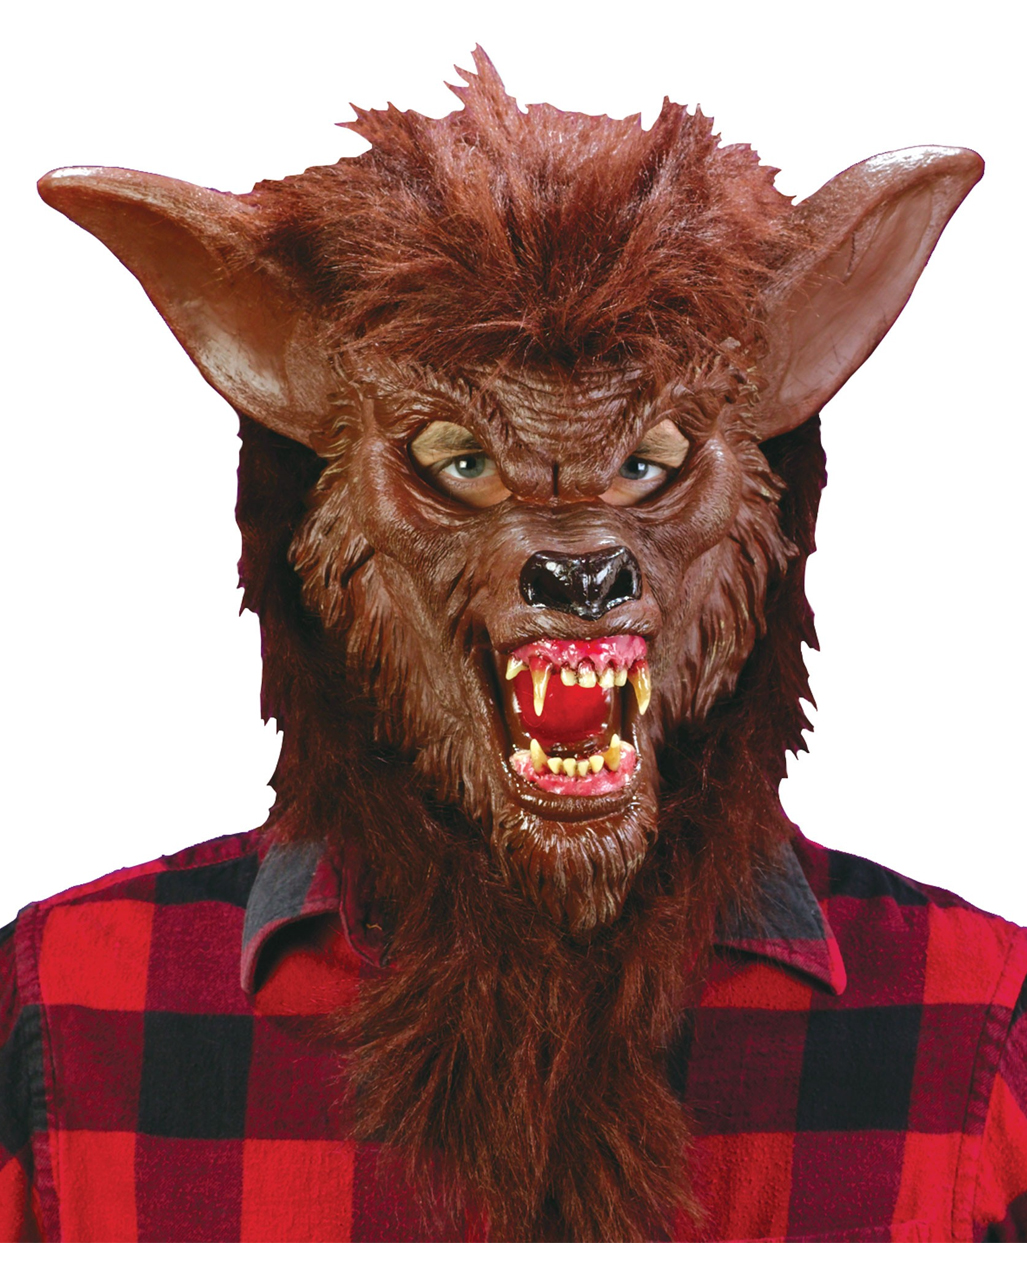 Halloween Werewolf Mask Costume with Fake Blood Makeup Gloves Fancy Dress Party